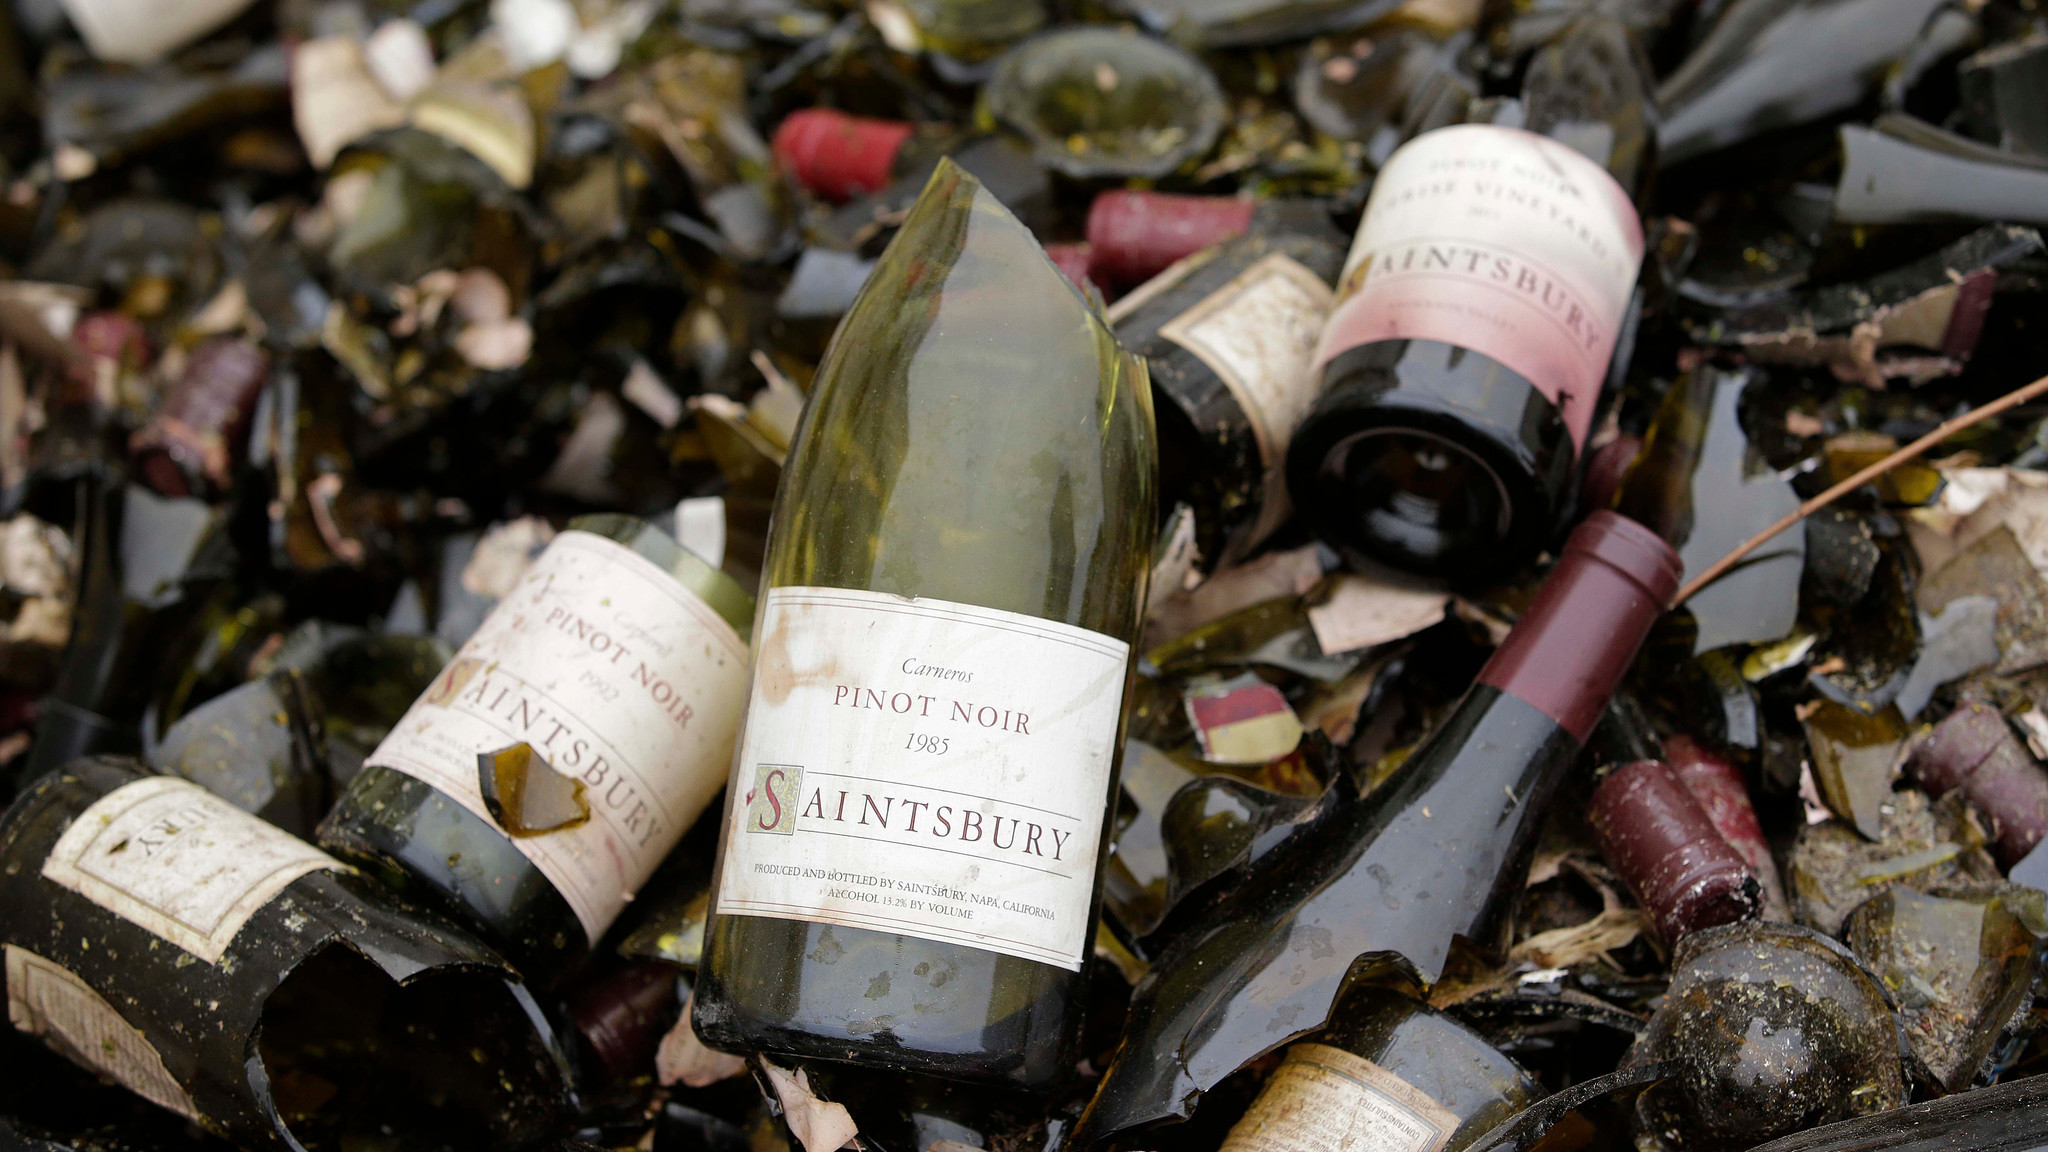 Vintage bottles from the wine library at Saintsbury winery in Napa, Calif., are tossed in a bin after an August 2014 temblor.